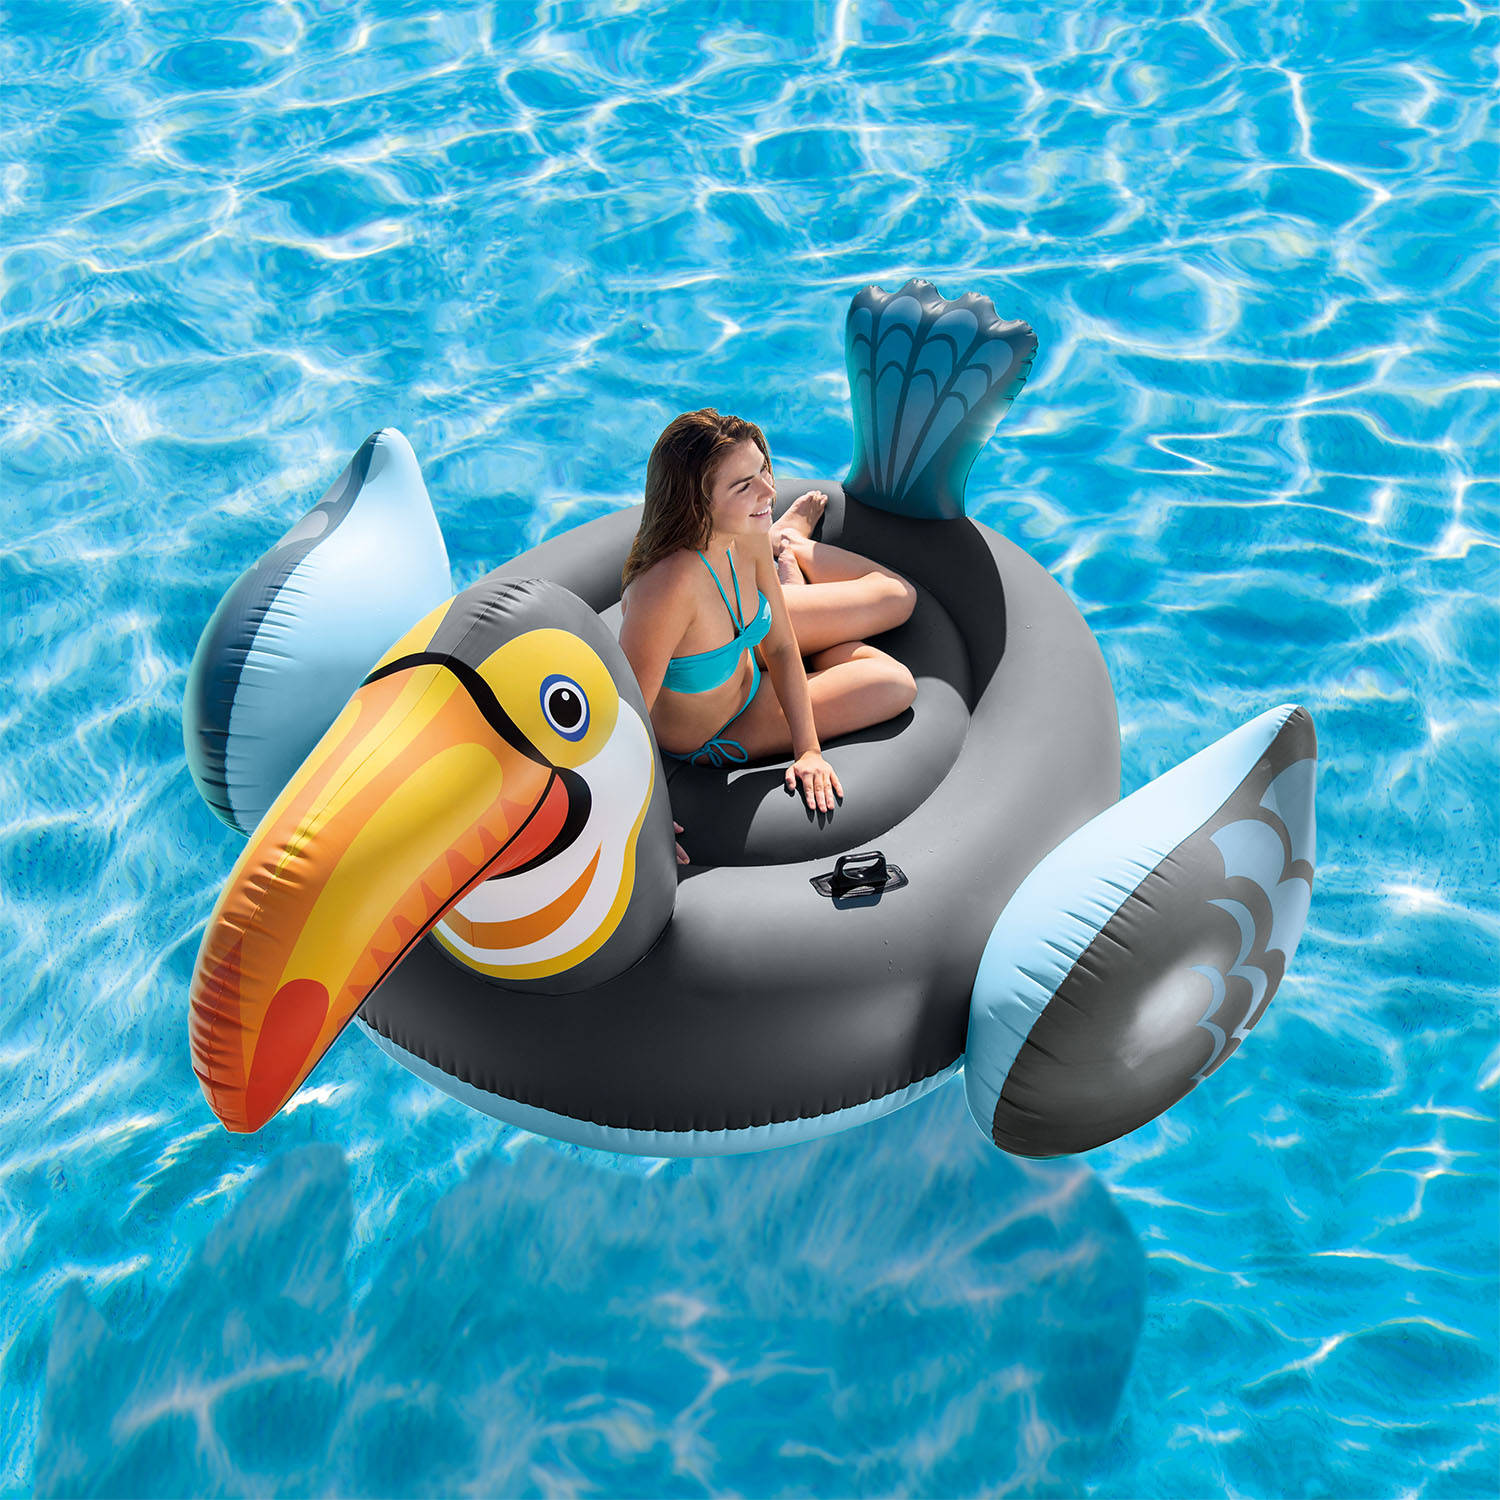 Intex Inflatable Mega Toucan Island Float  sc 1 st  Walmart.com & Intex Inflatable Watermelon Island Float Lounge - Walmart.com